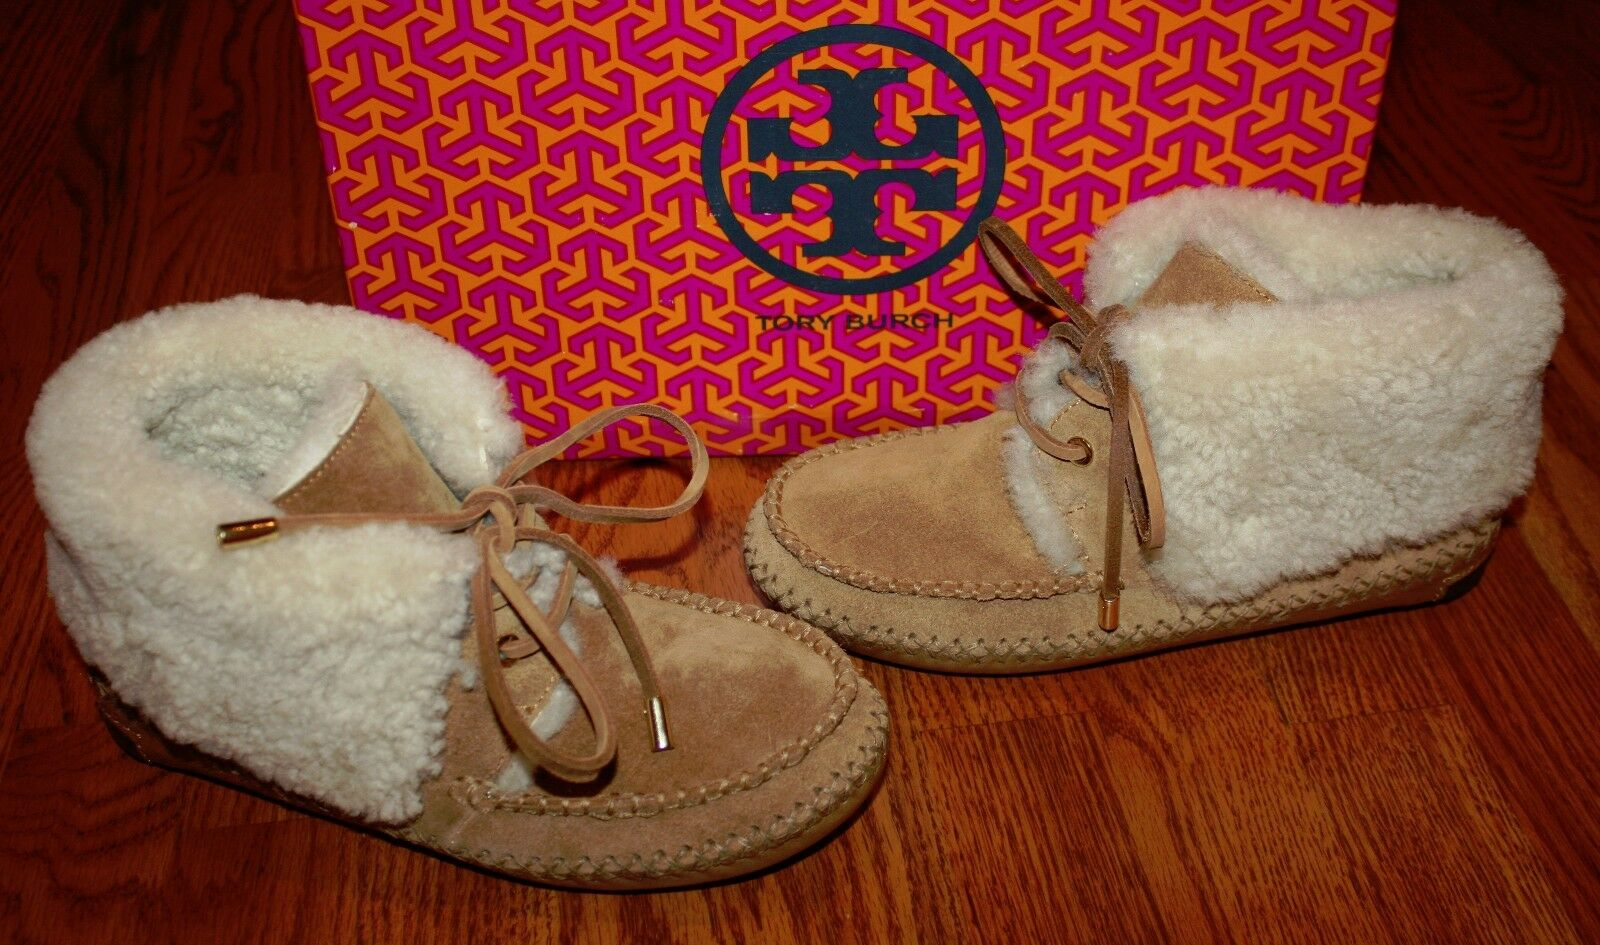 NIB Nordstrom Womens Tory Burch Vicuna Chestnut Nathan Flat Bootie Shoes Size 7